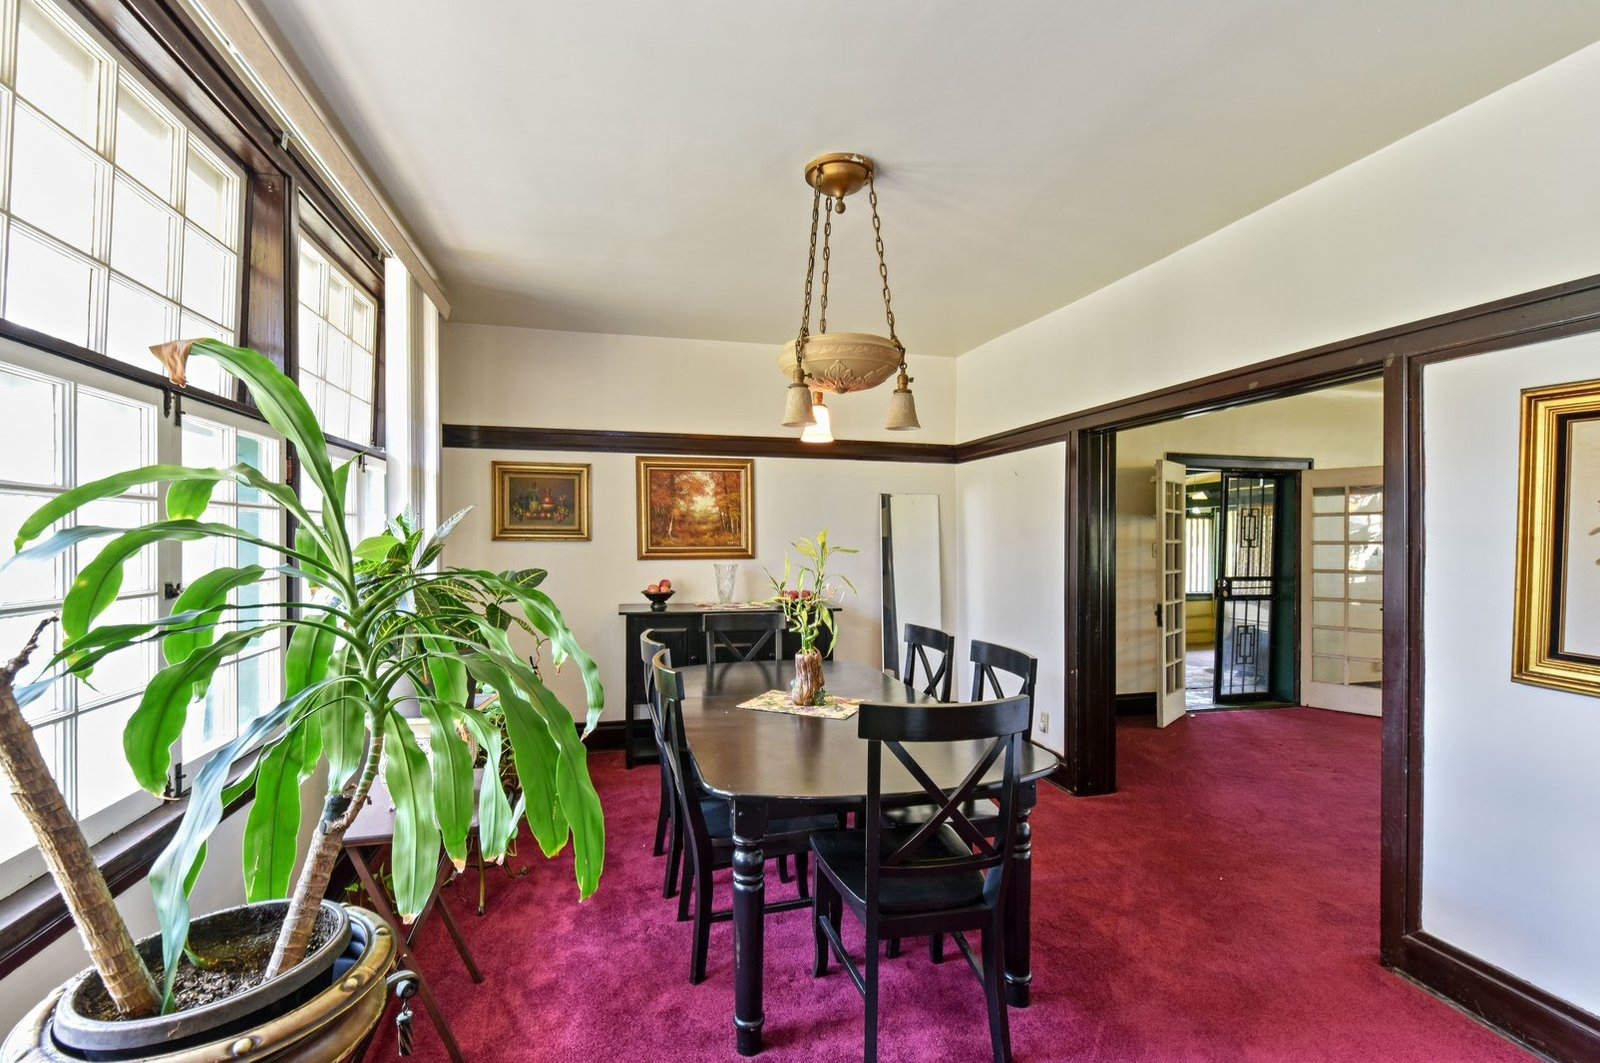 The S A Foster House and Stable by Frank Lloyd Wright is for sale